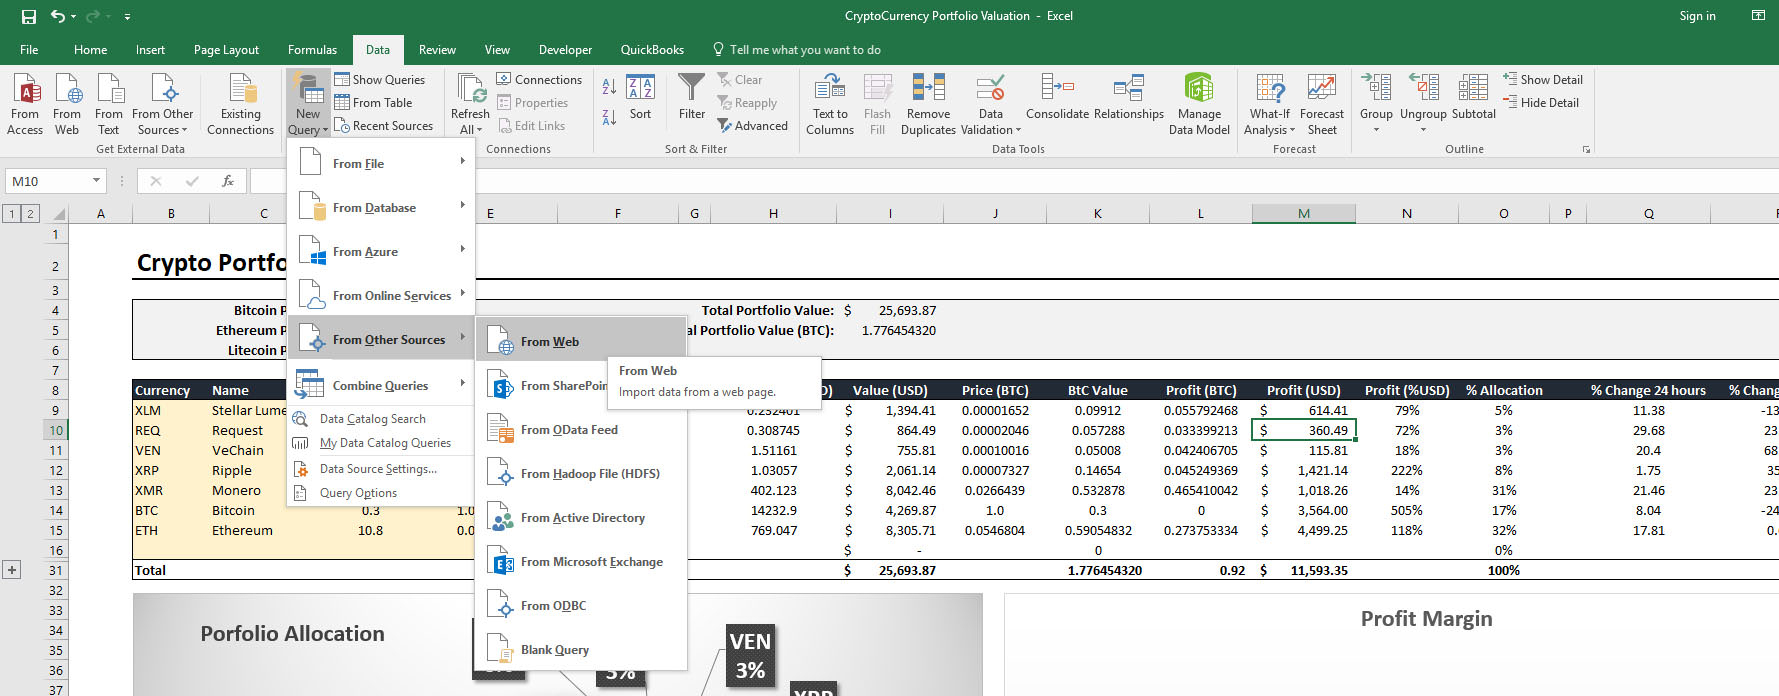 Crypto Trading Spreadsheet For I've Created An Excel Crypto Portfolio Tracker That Draws Live